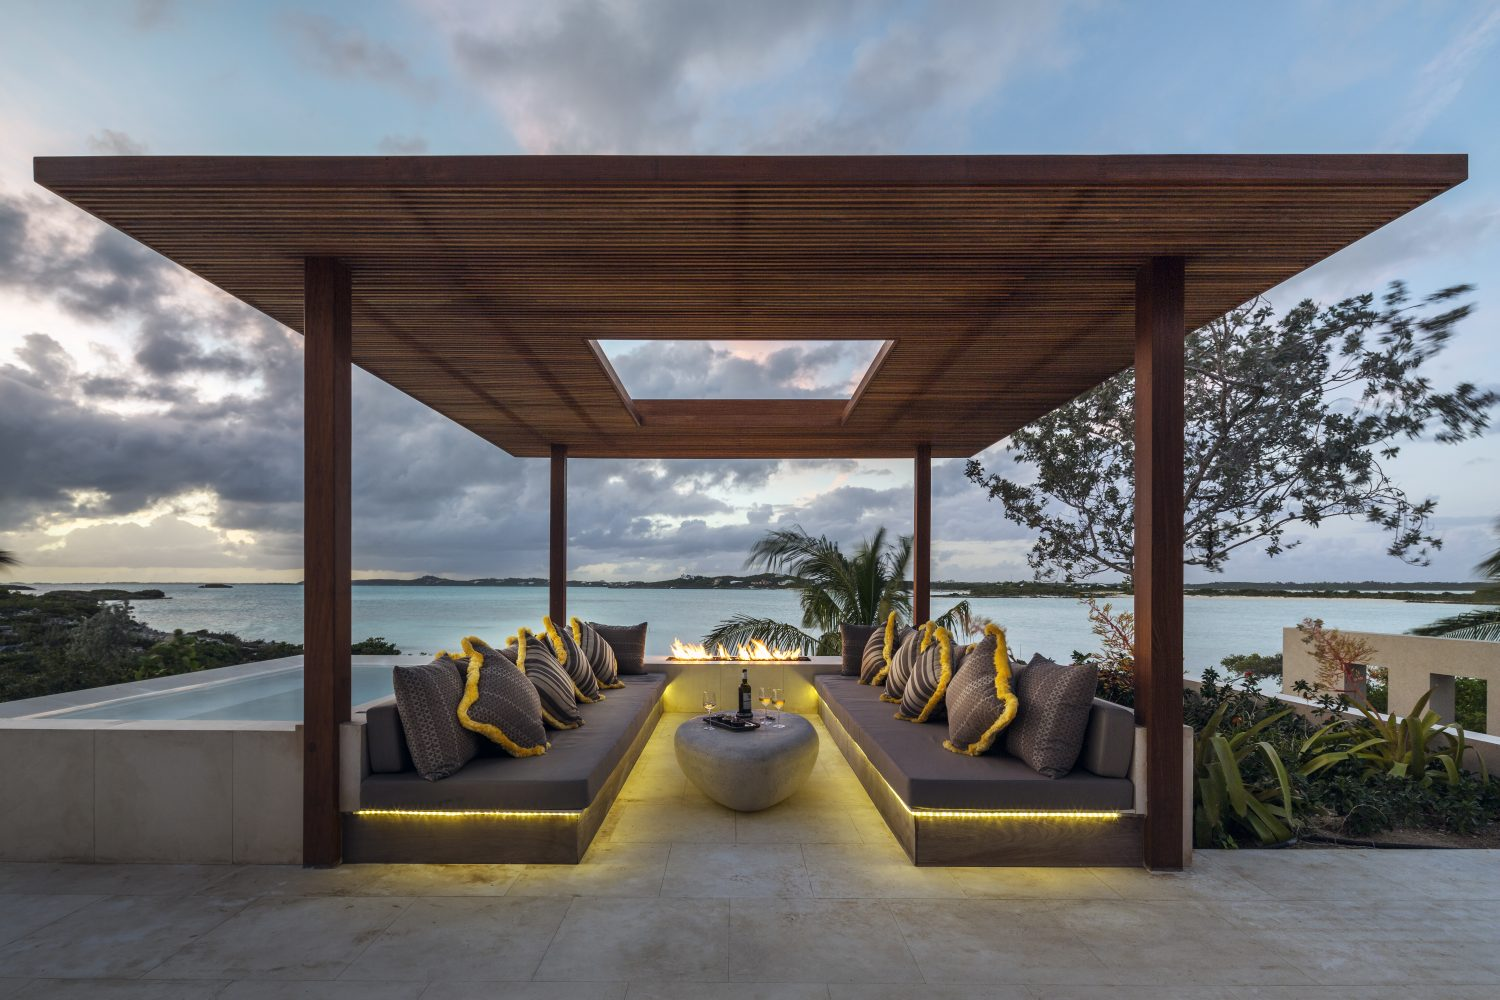 Serruys Residence: Architectural renovation and interior decoration of a seaside villa, Location: Providenciales; Turks & Caicos Islands, Designer: Domino Crreative